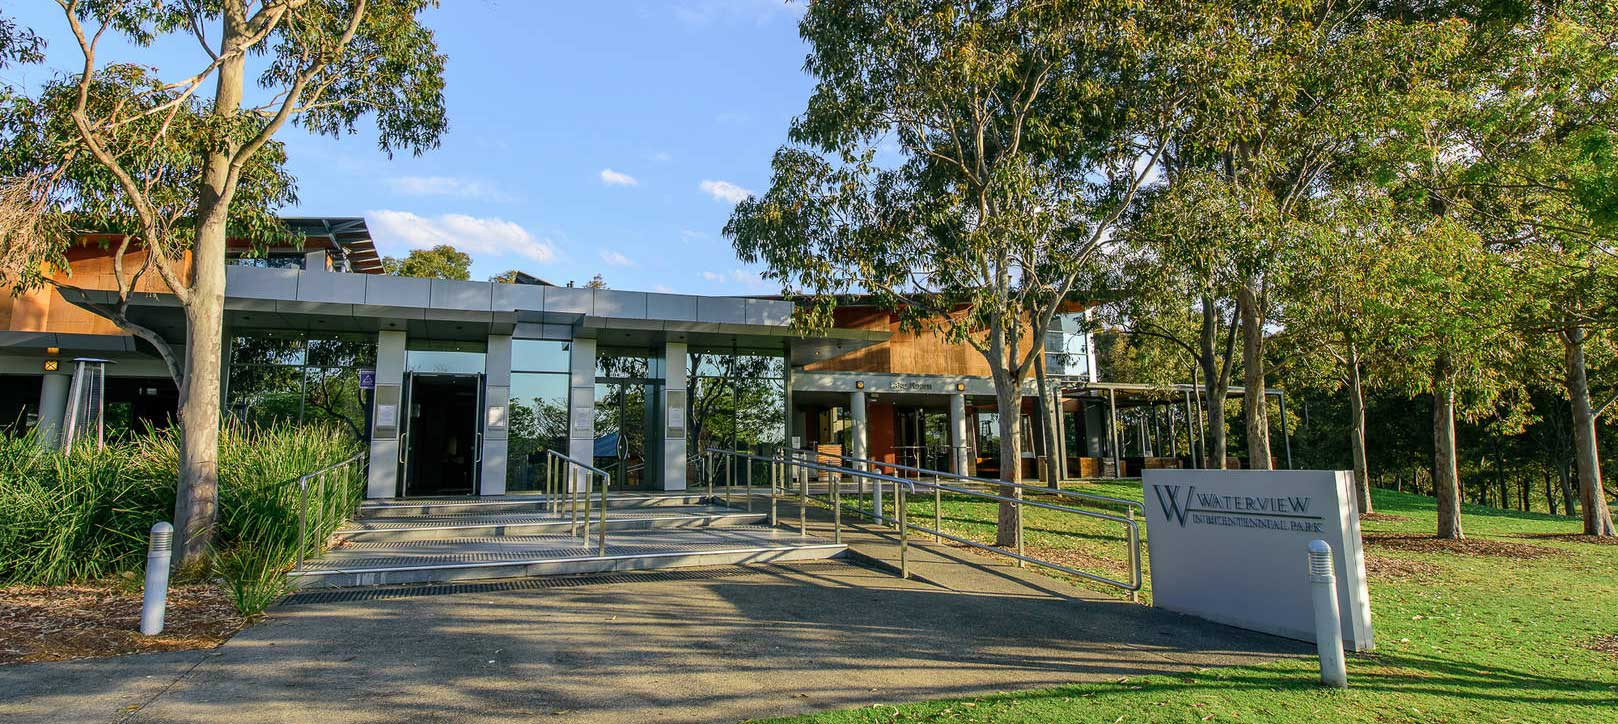 RCS-AIr Case Study - Waterview Convention Centre - Bicentennial Park, Homebush